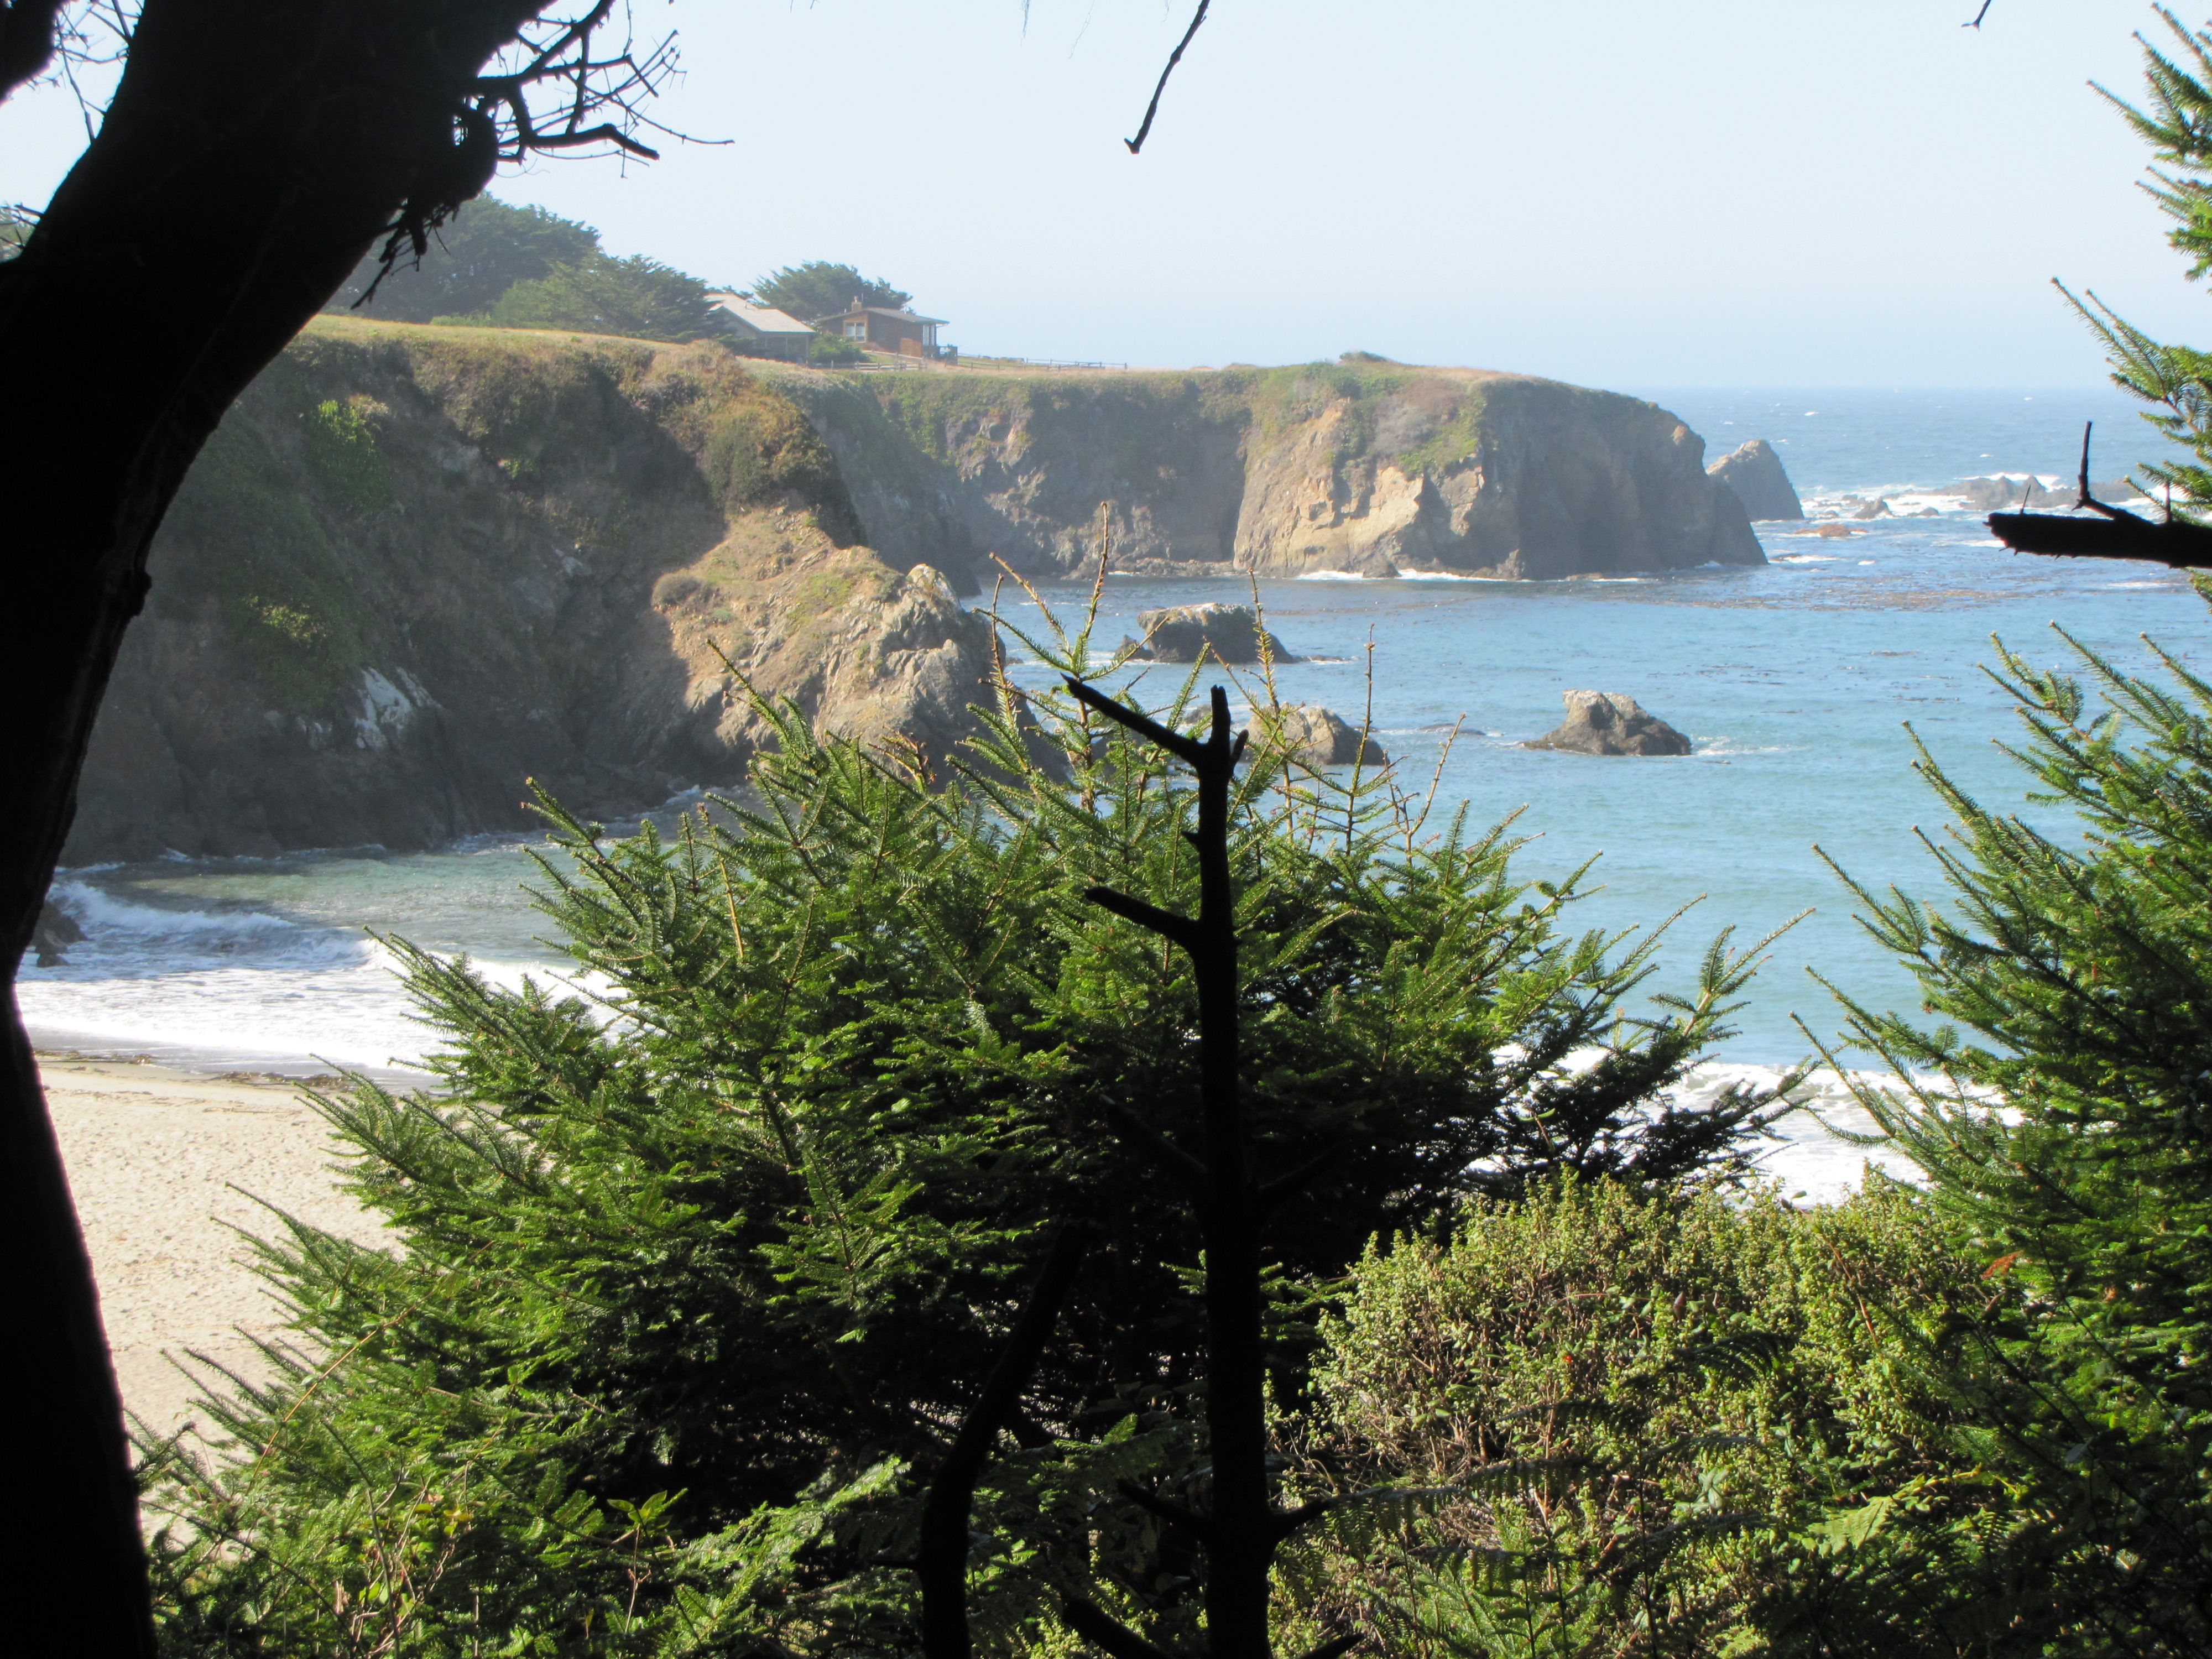 If You Re Looking For A Great Place To Visit Camping Is Your Thing Stop By Caspar Beach Rv Park At 14441 Point Cabrillo Drive Mendocino Ca